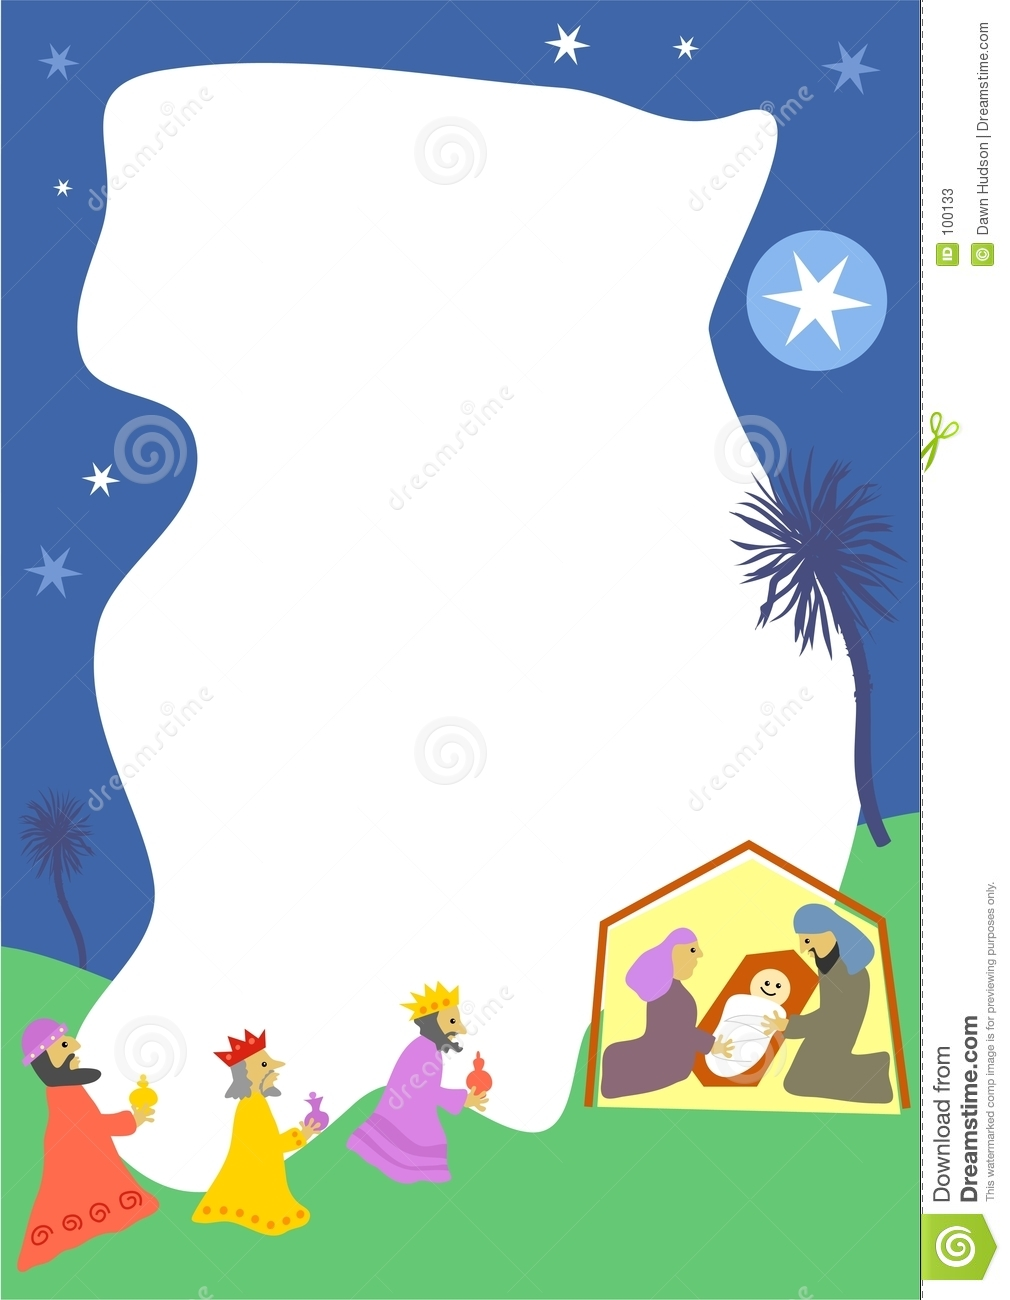 Nativity Border Stock Photos - Image: 100133